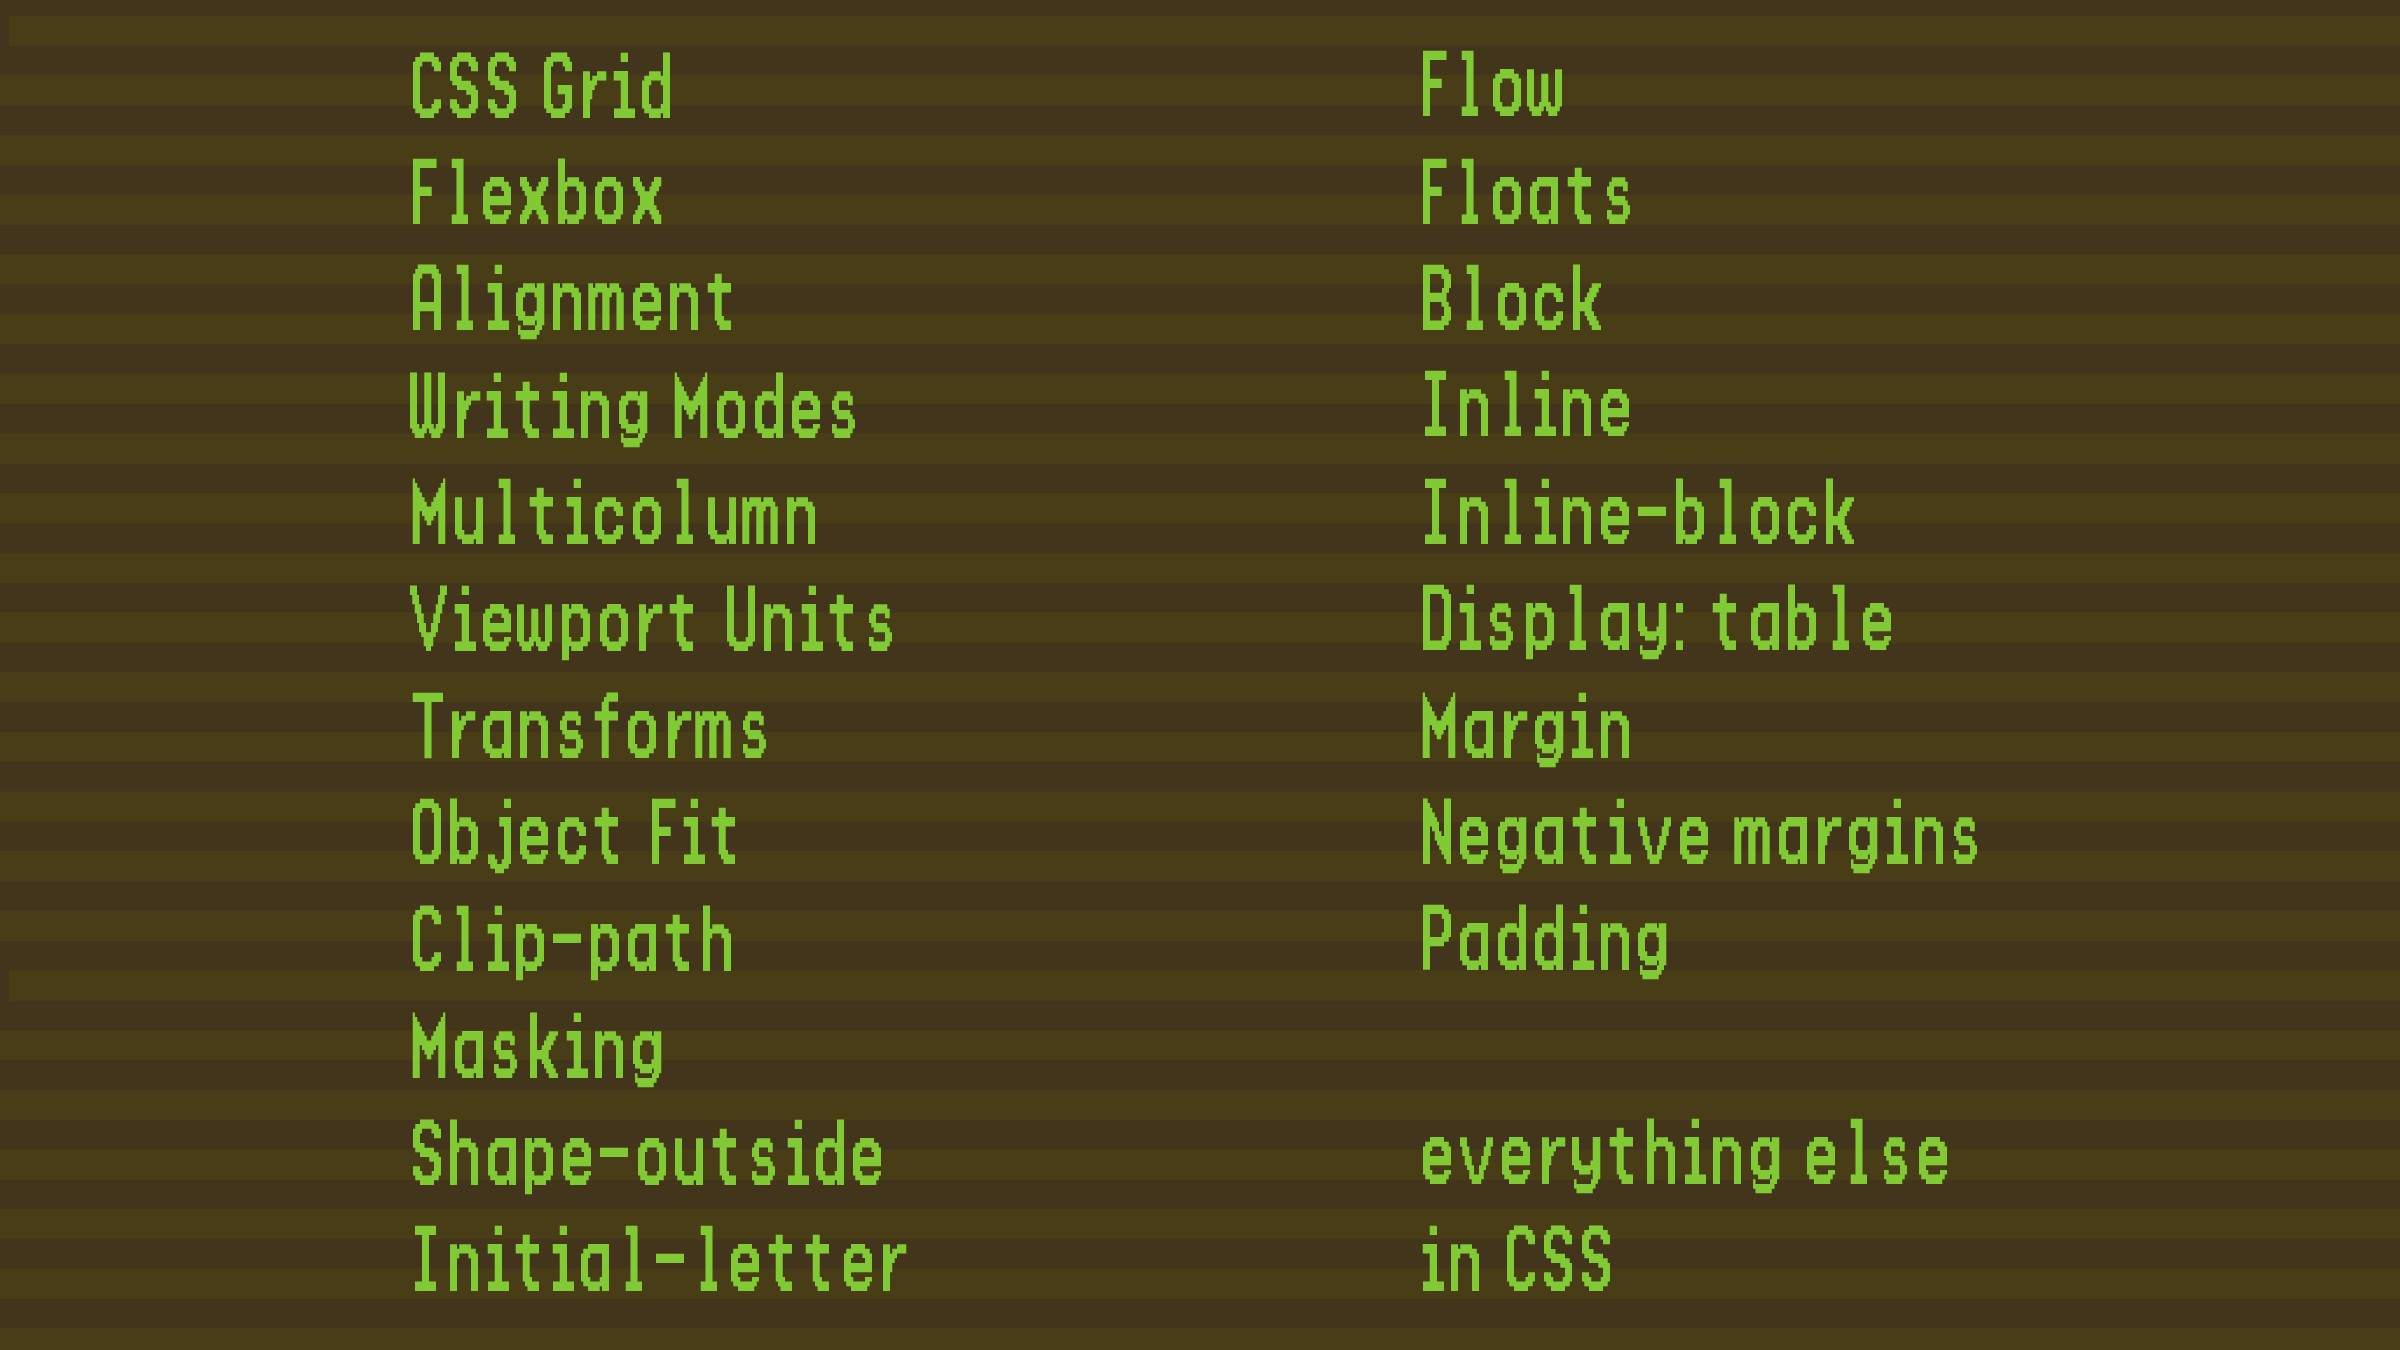 CSS Grid Flexbox Alignment Writing Modes Multic...